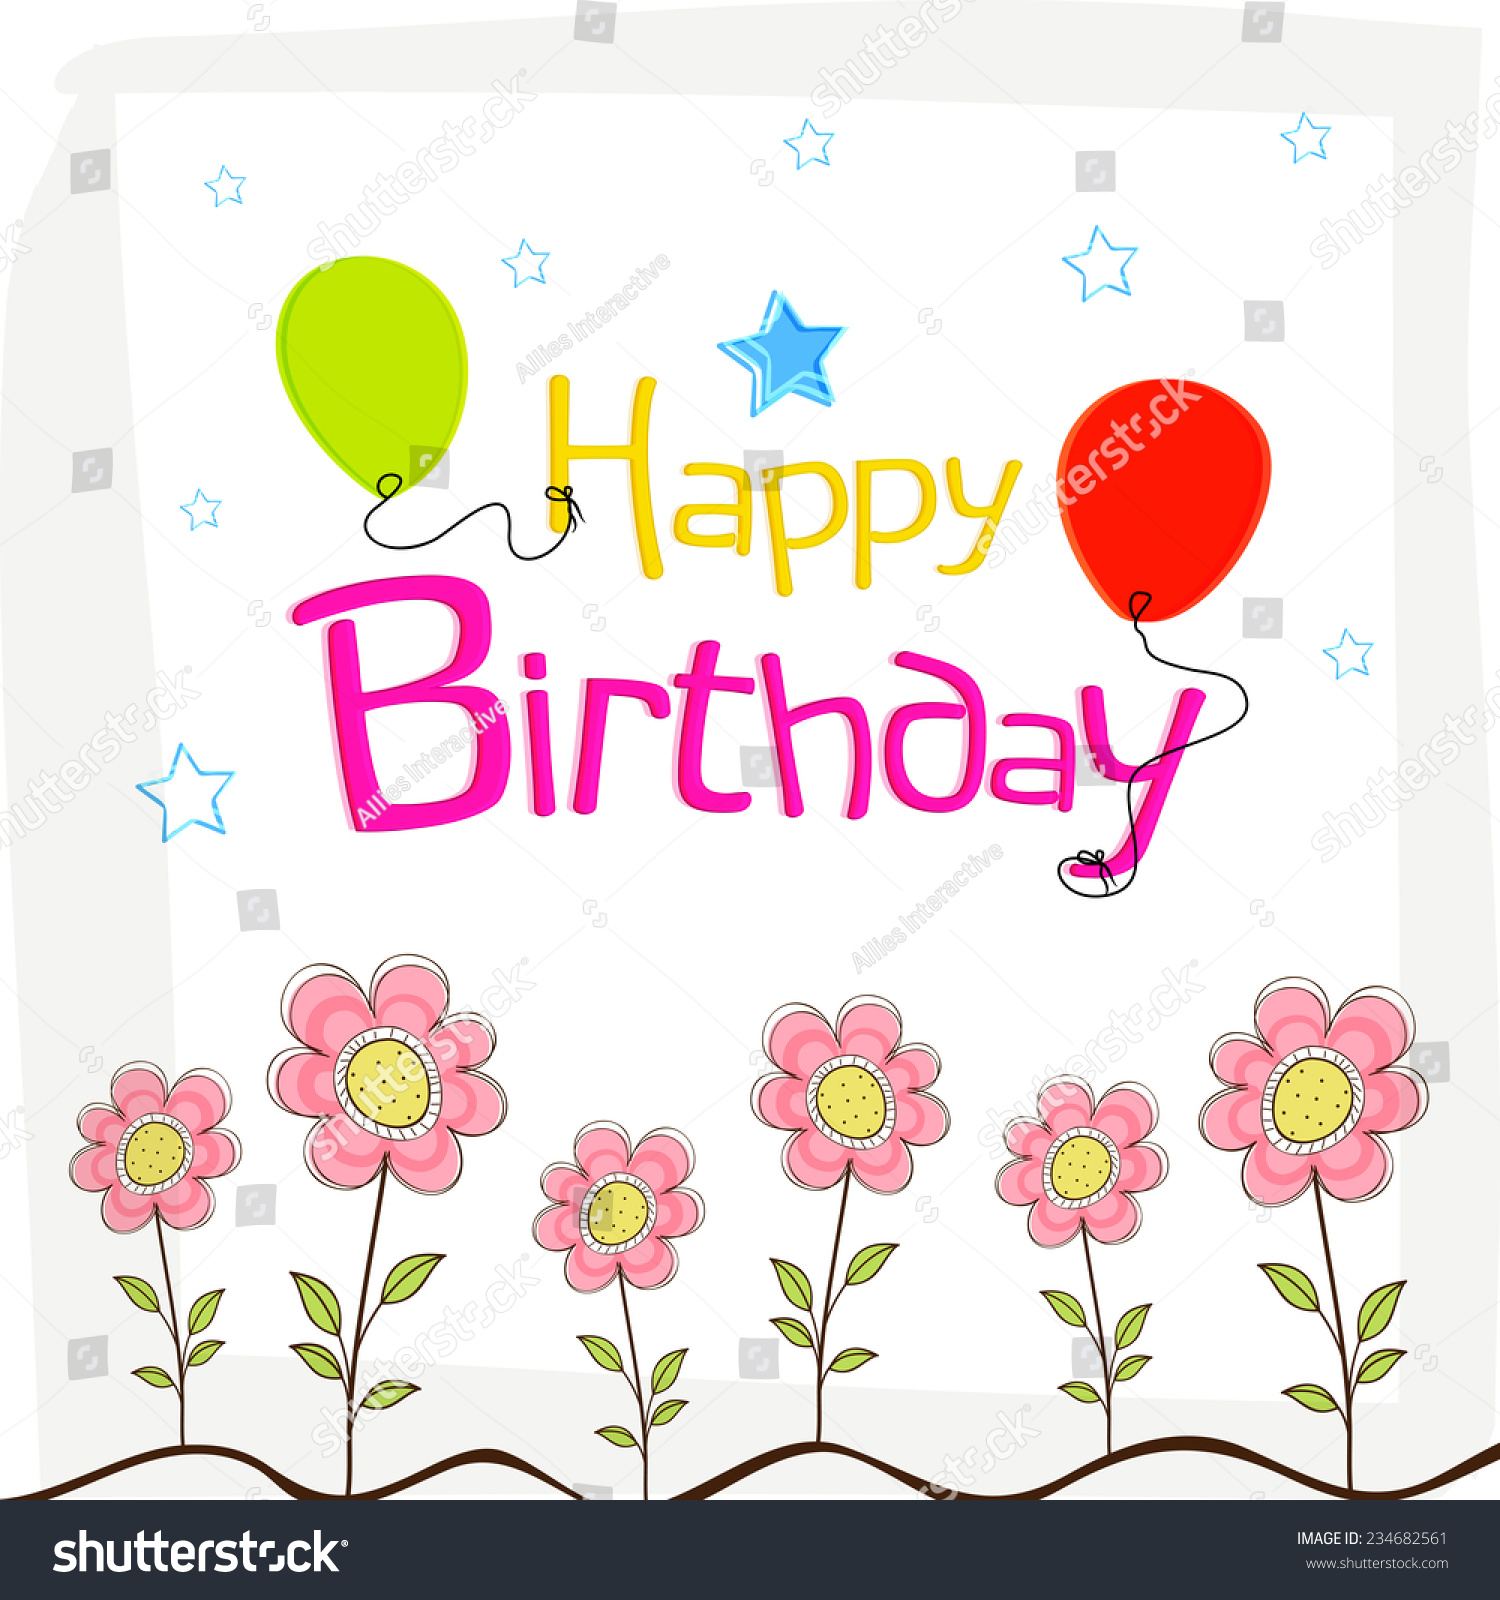 Stylish poster banner flyer happy birthday stock vector 234682561 stylish poster banner or flyer of happy birthday with decoration of flowers and balloon dhlflorist Choice Image